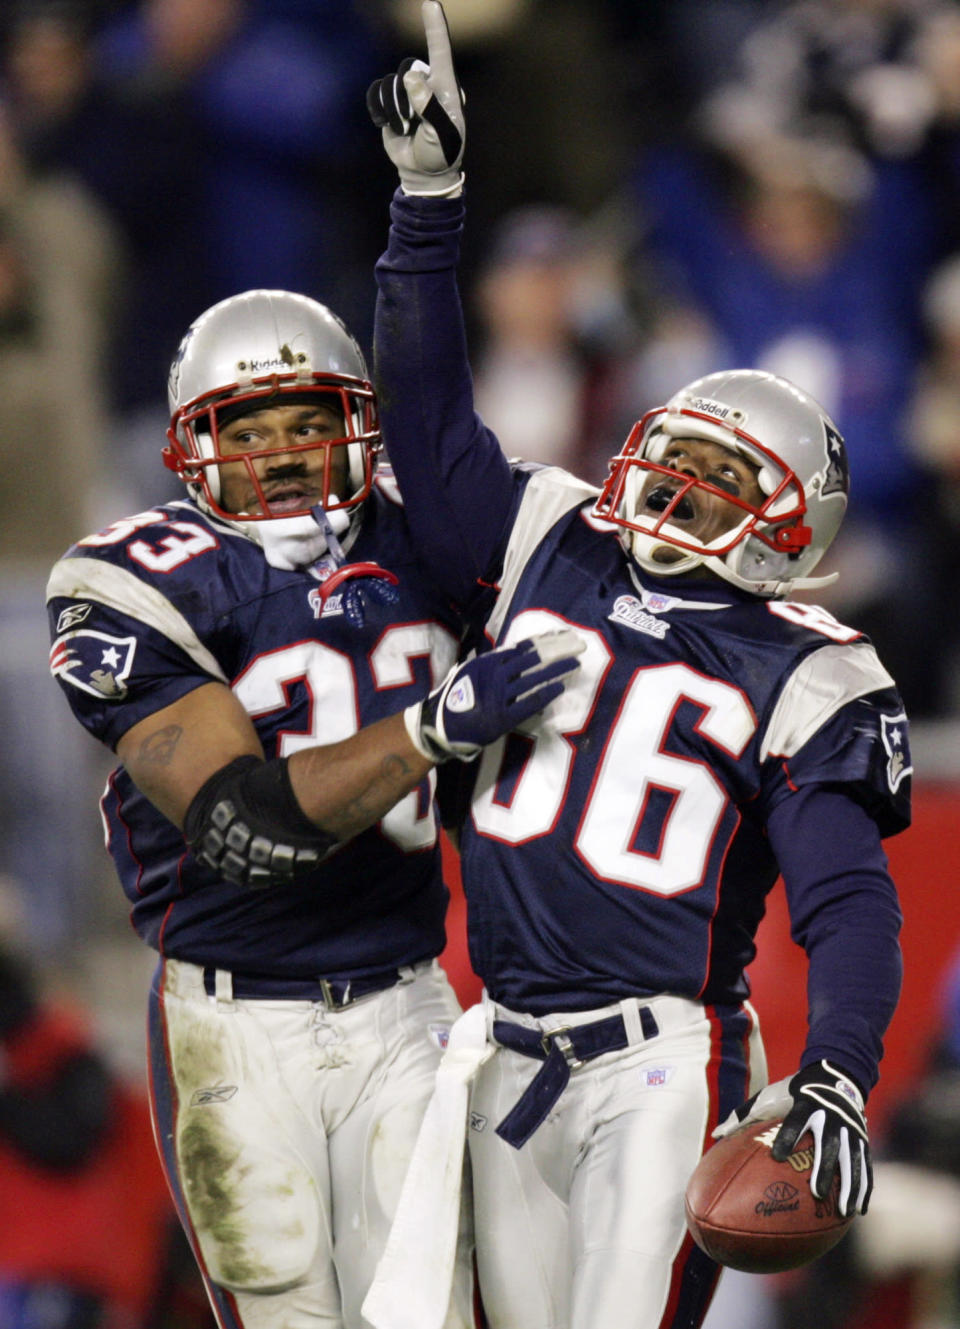 FILE - In this Nov. 14, 2004, file photo, New England Patriots' Kevin Faulk (33) celebrates with David Patten (86) after Patten's touchdown reception against the Buffalo Bills during the second quarter of an NFL football game at Gillette Stadium in Foxborough, Mass. Patten, who caught Tom Brady's first postseason touchdown to help the Patriots win their first Super Bowl, was killed in a motorcycle accident on Thursday night, Sept. 3, 2021, outside of Columbia, S.C., Richard County coroner Naida Rutherford said in a statement. He was 47. Patten played 12 seasons in the NFL after signing as an undrafted free agent with the New York Giants in 1997. (AP Photo/Winslow Townson, File)